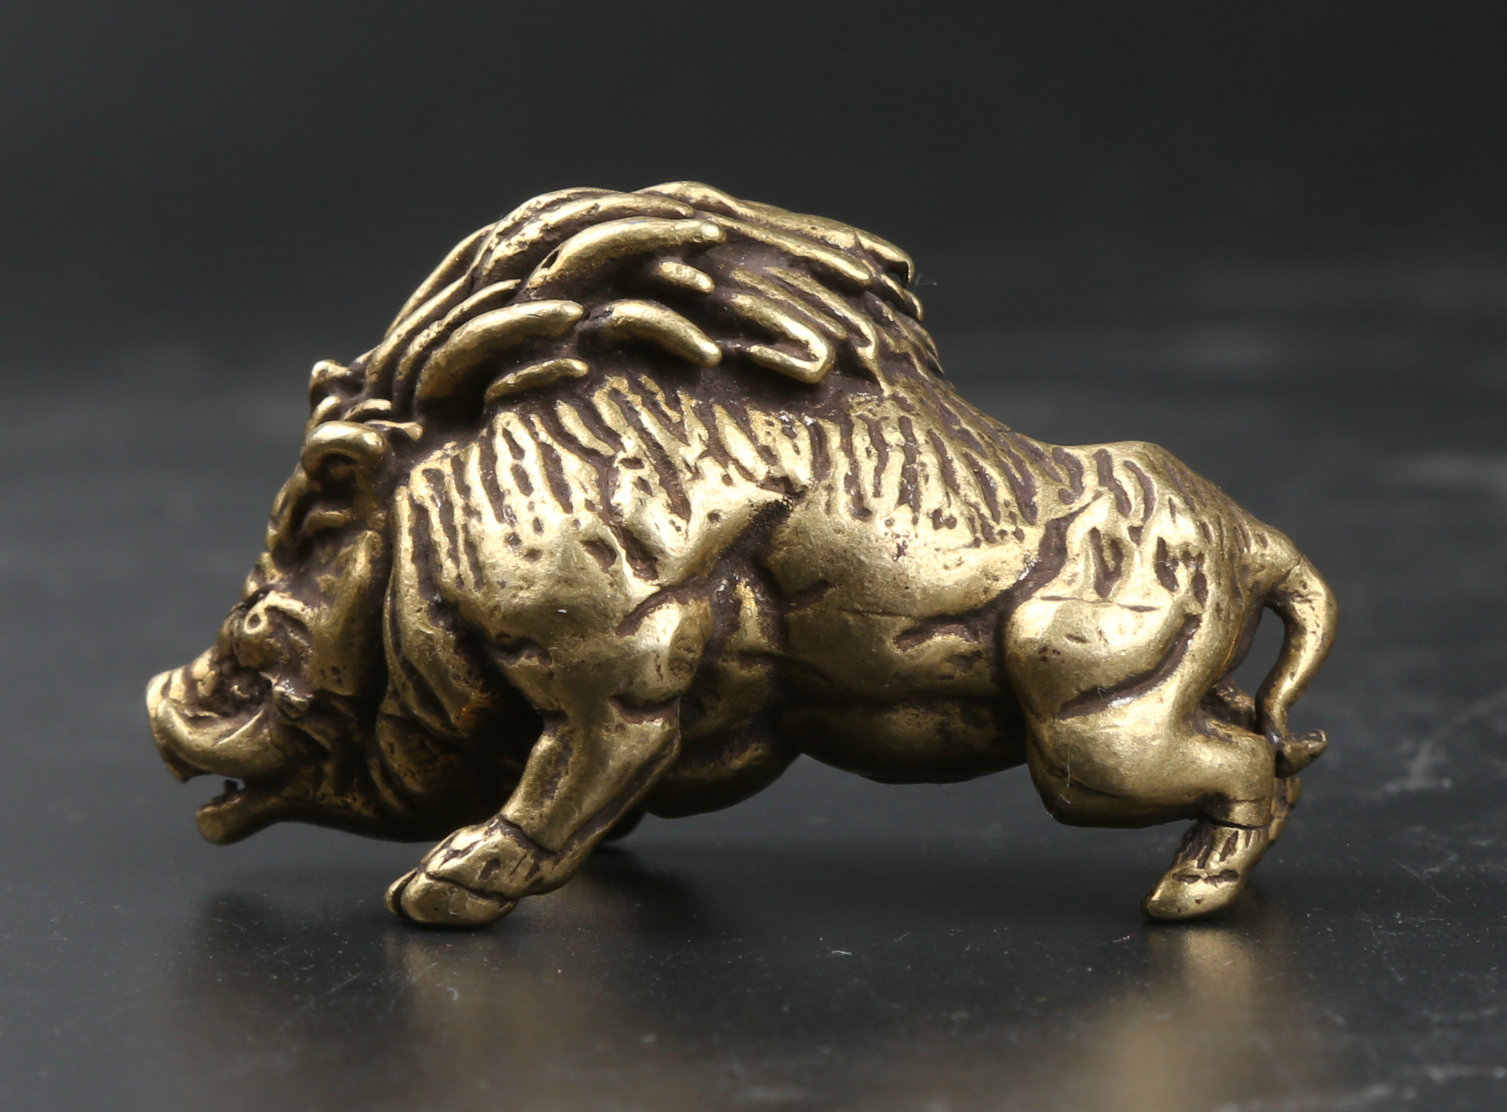 41MM Curio China Small Bronze Exquisite Animal Boar Wild Boar Sus Scrofa Statue